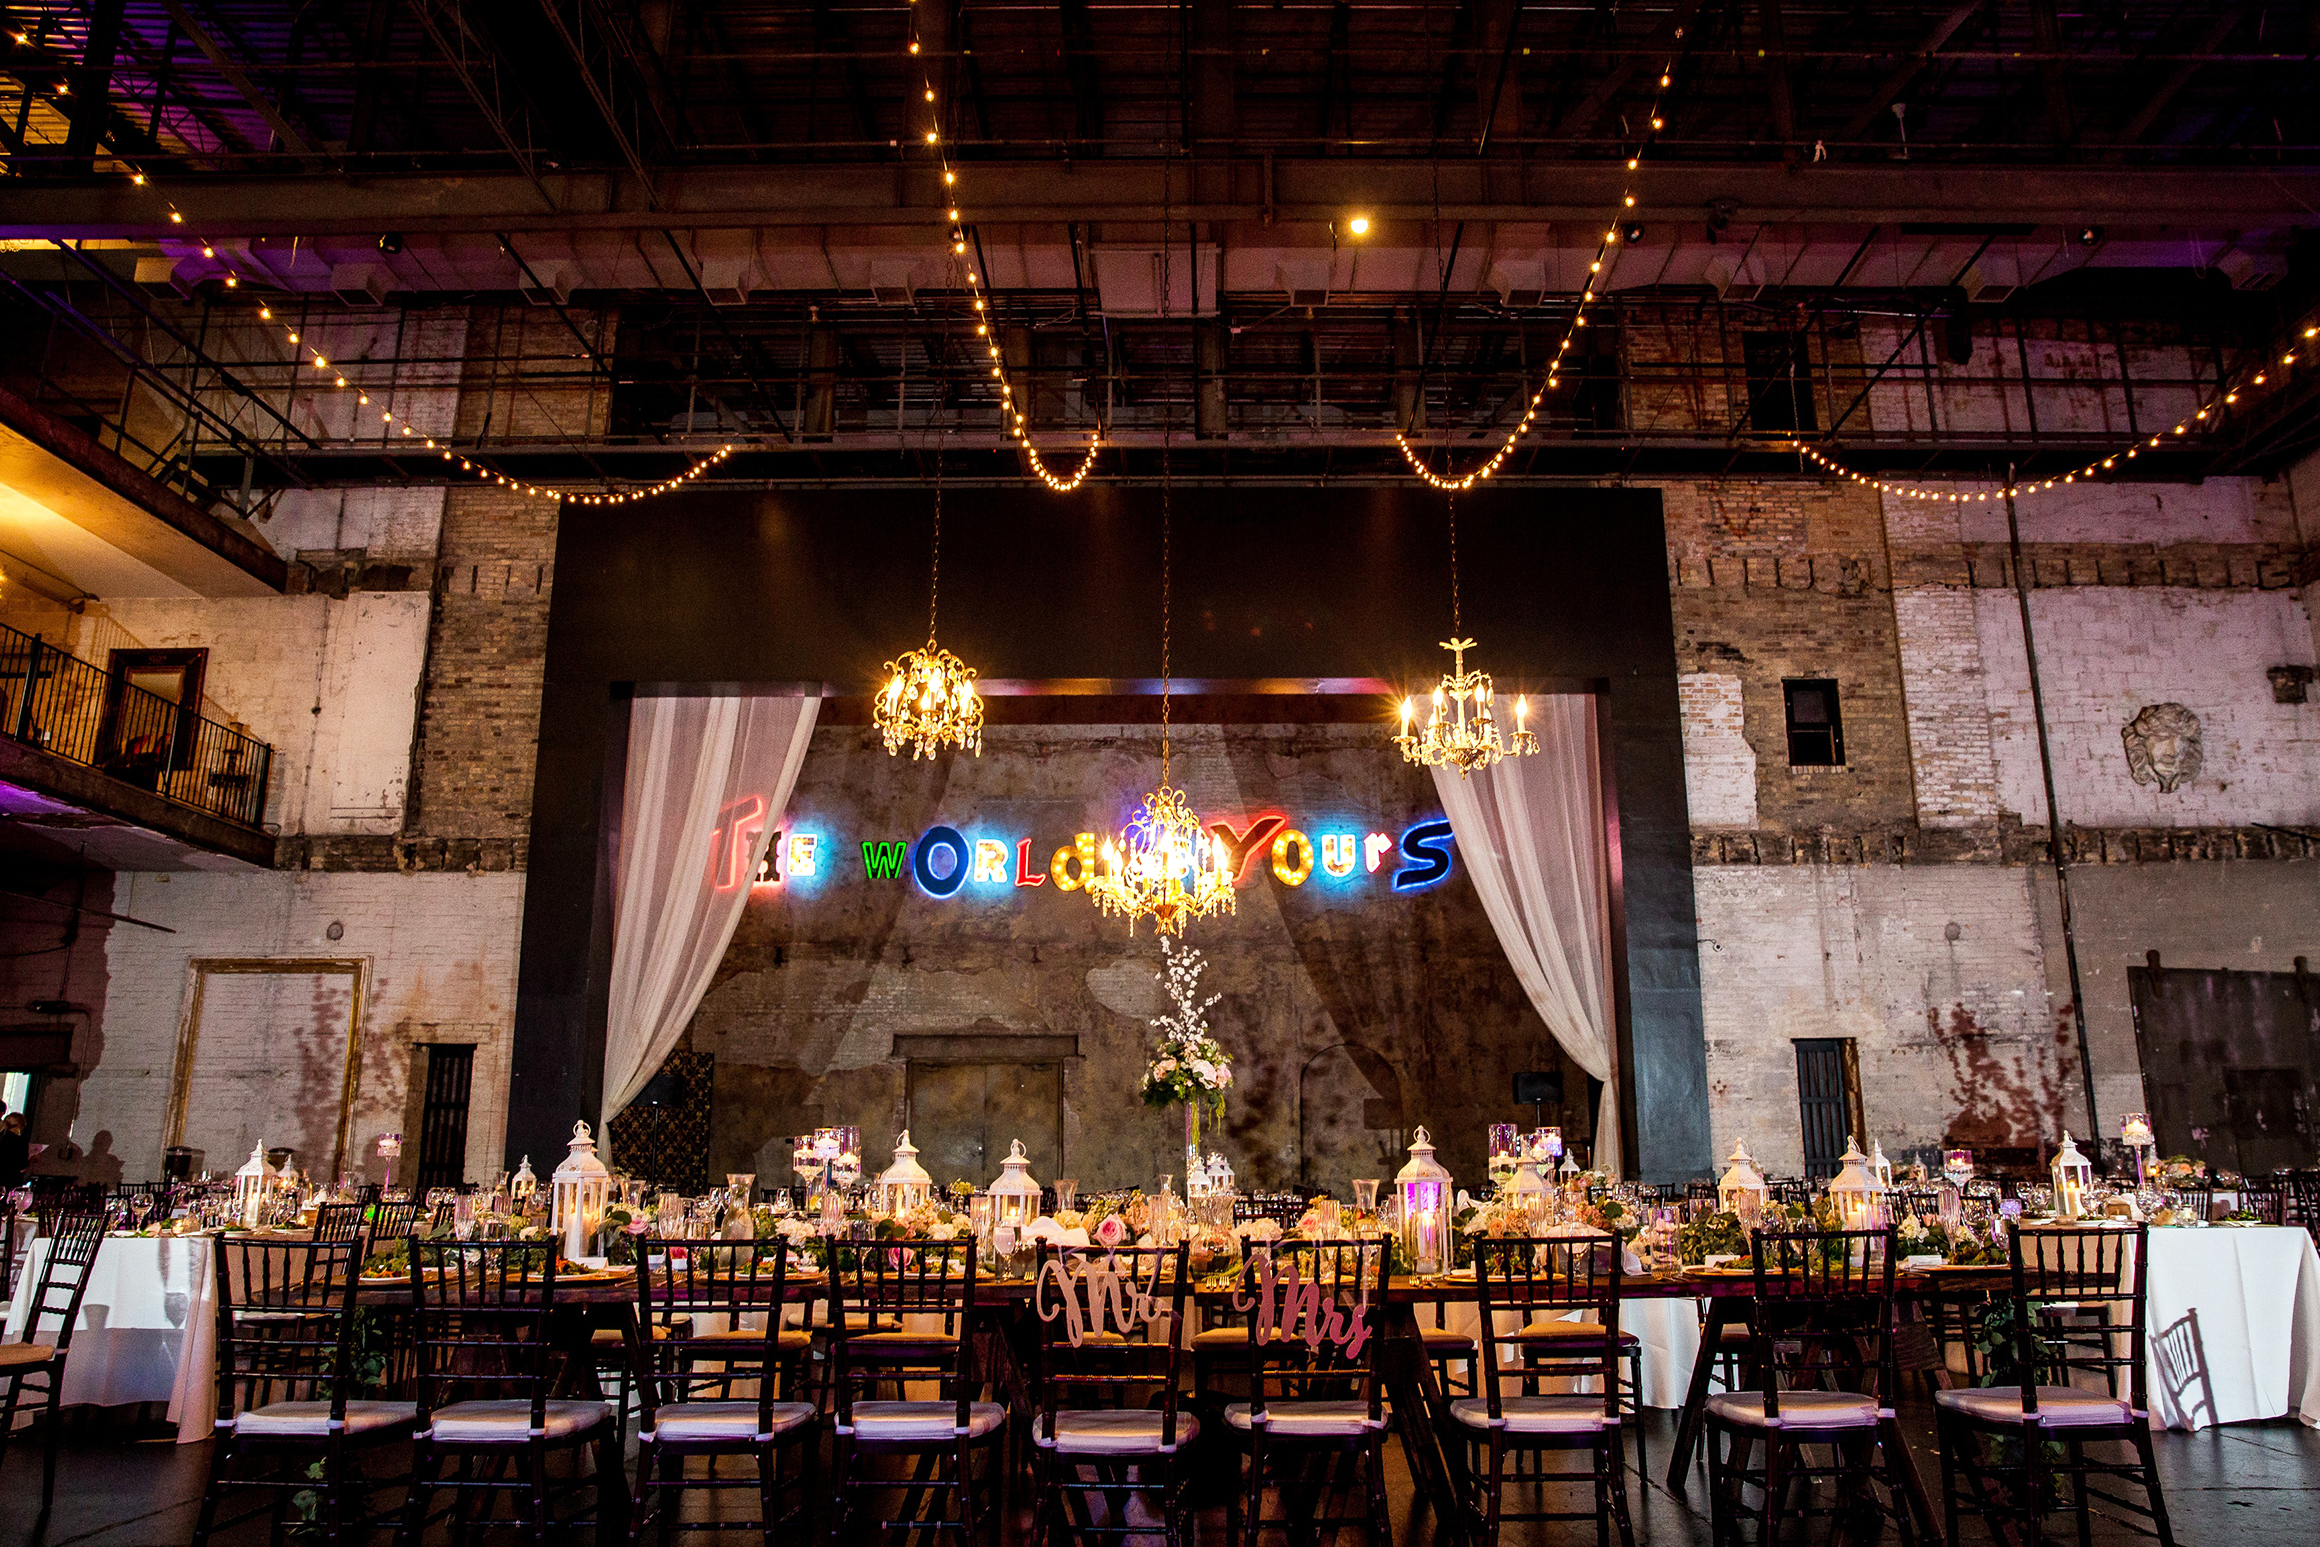 mpls aria venue wedding.jpg